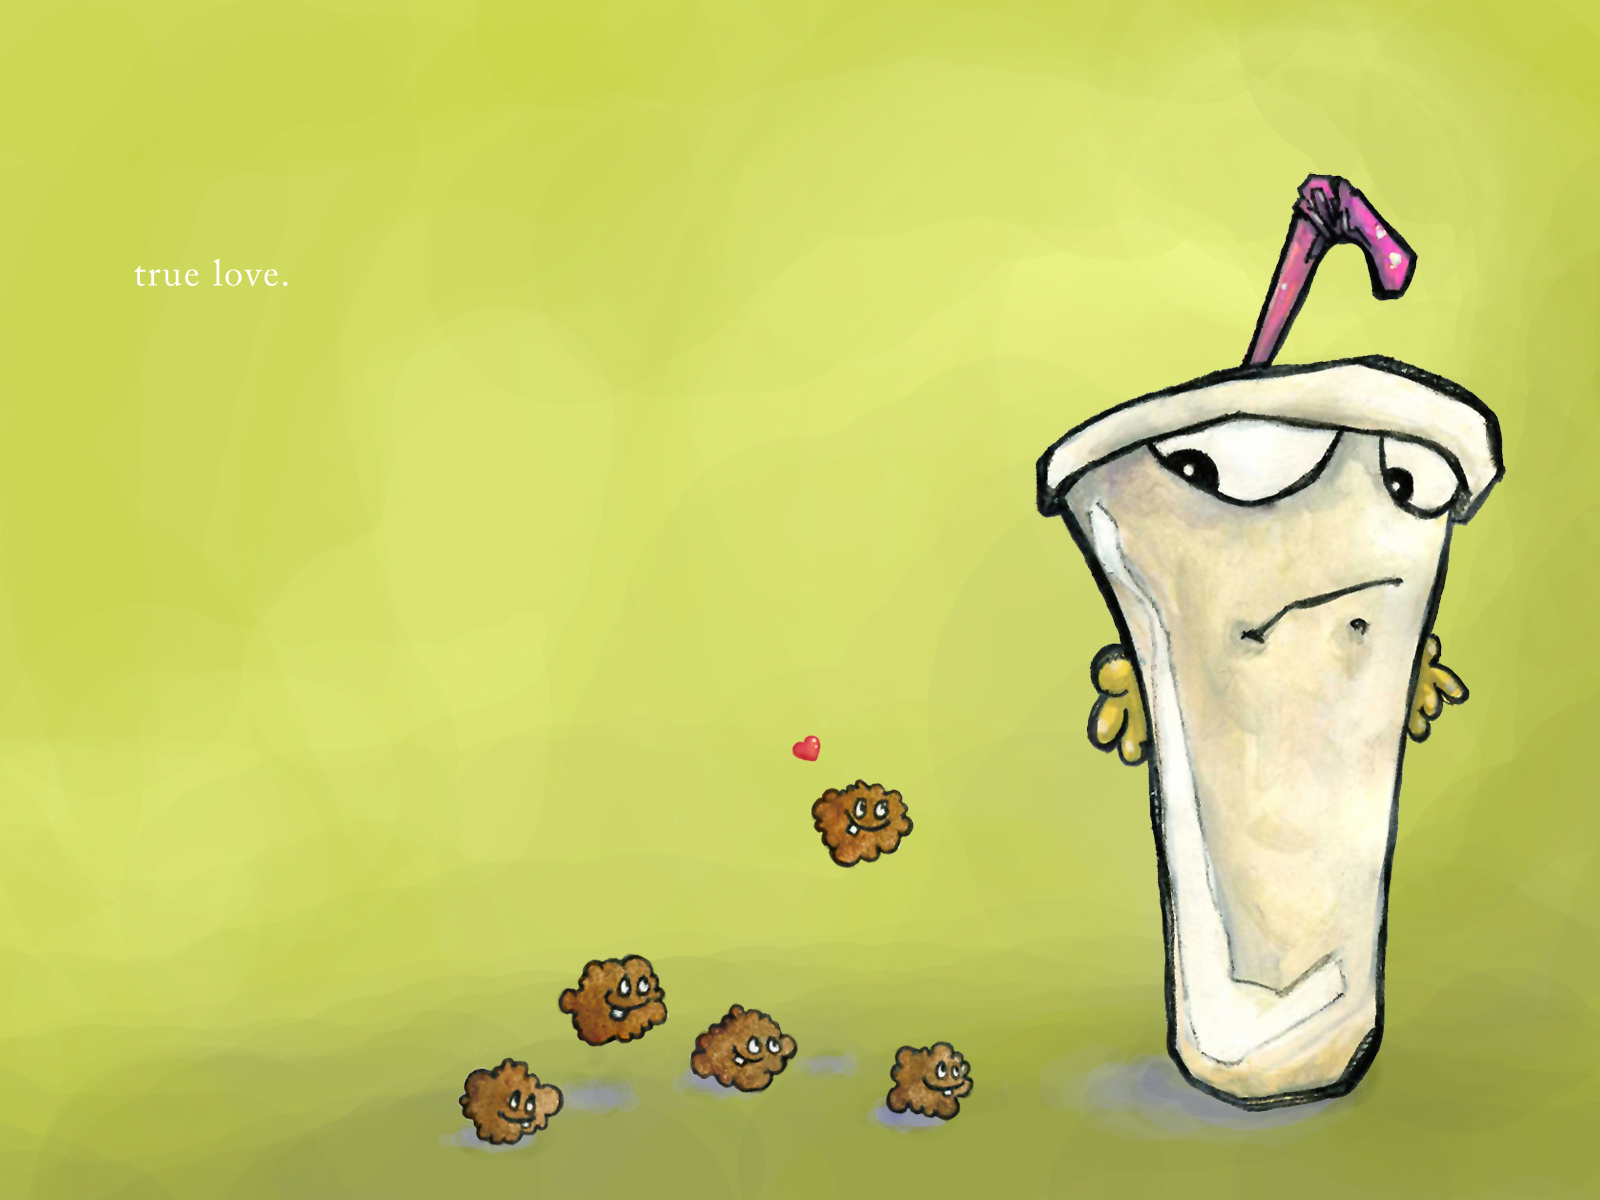 Aqua Teen Hunger Force Computer Wallpapers Desktop 1600x1200